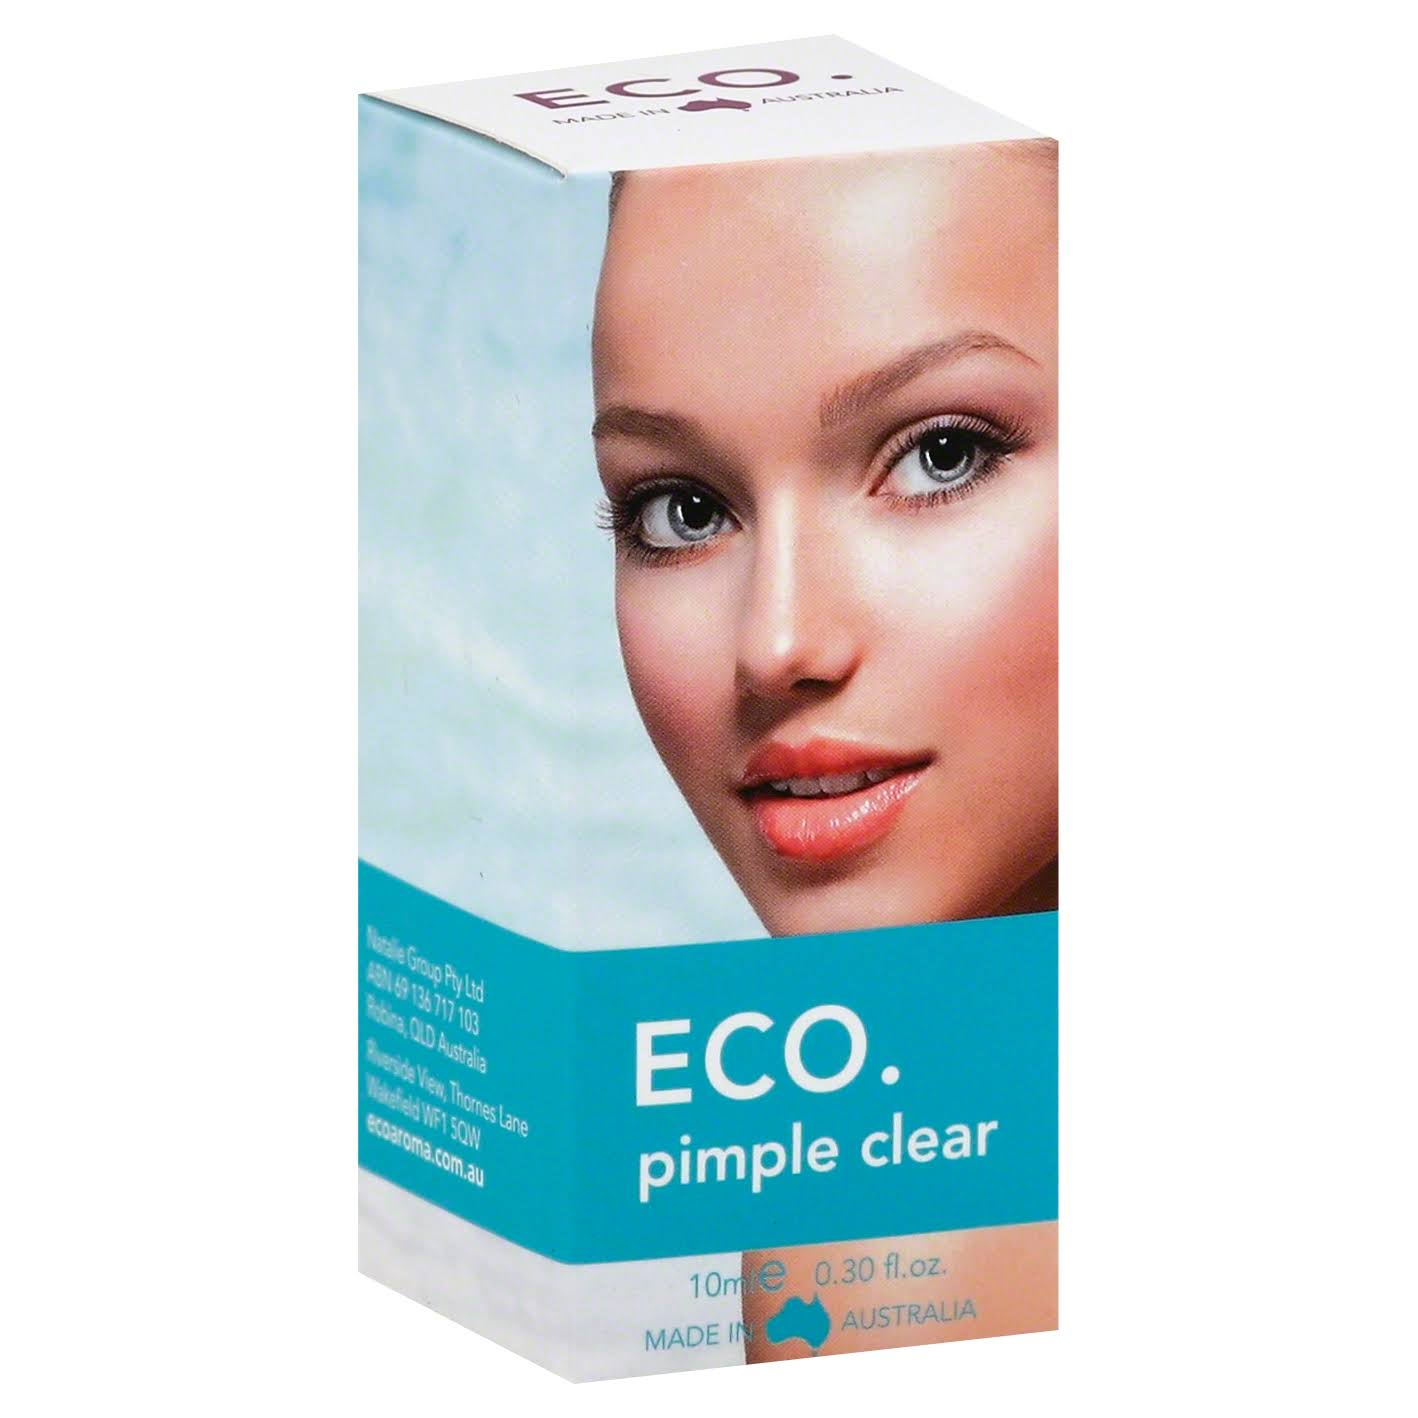 Eco Face Pimple Clear - 10ml